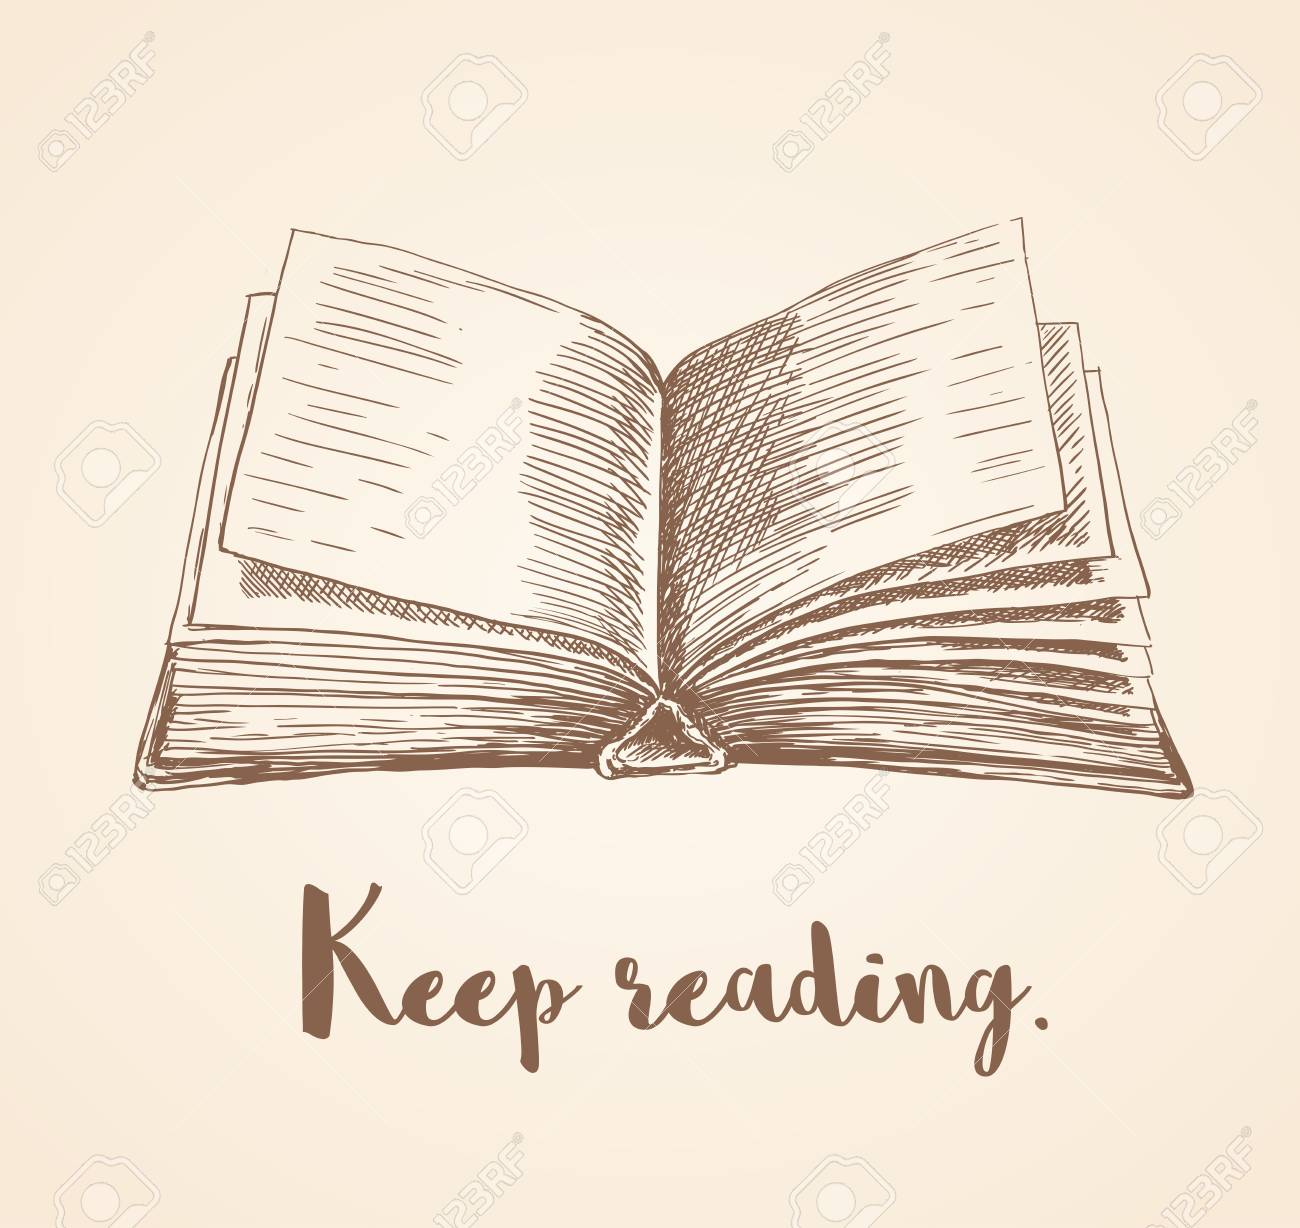 Image result for keep reading clipart